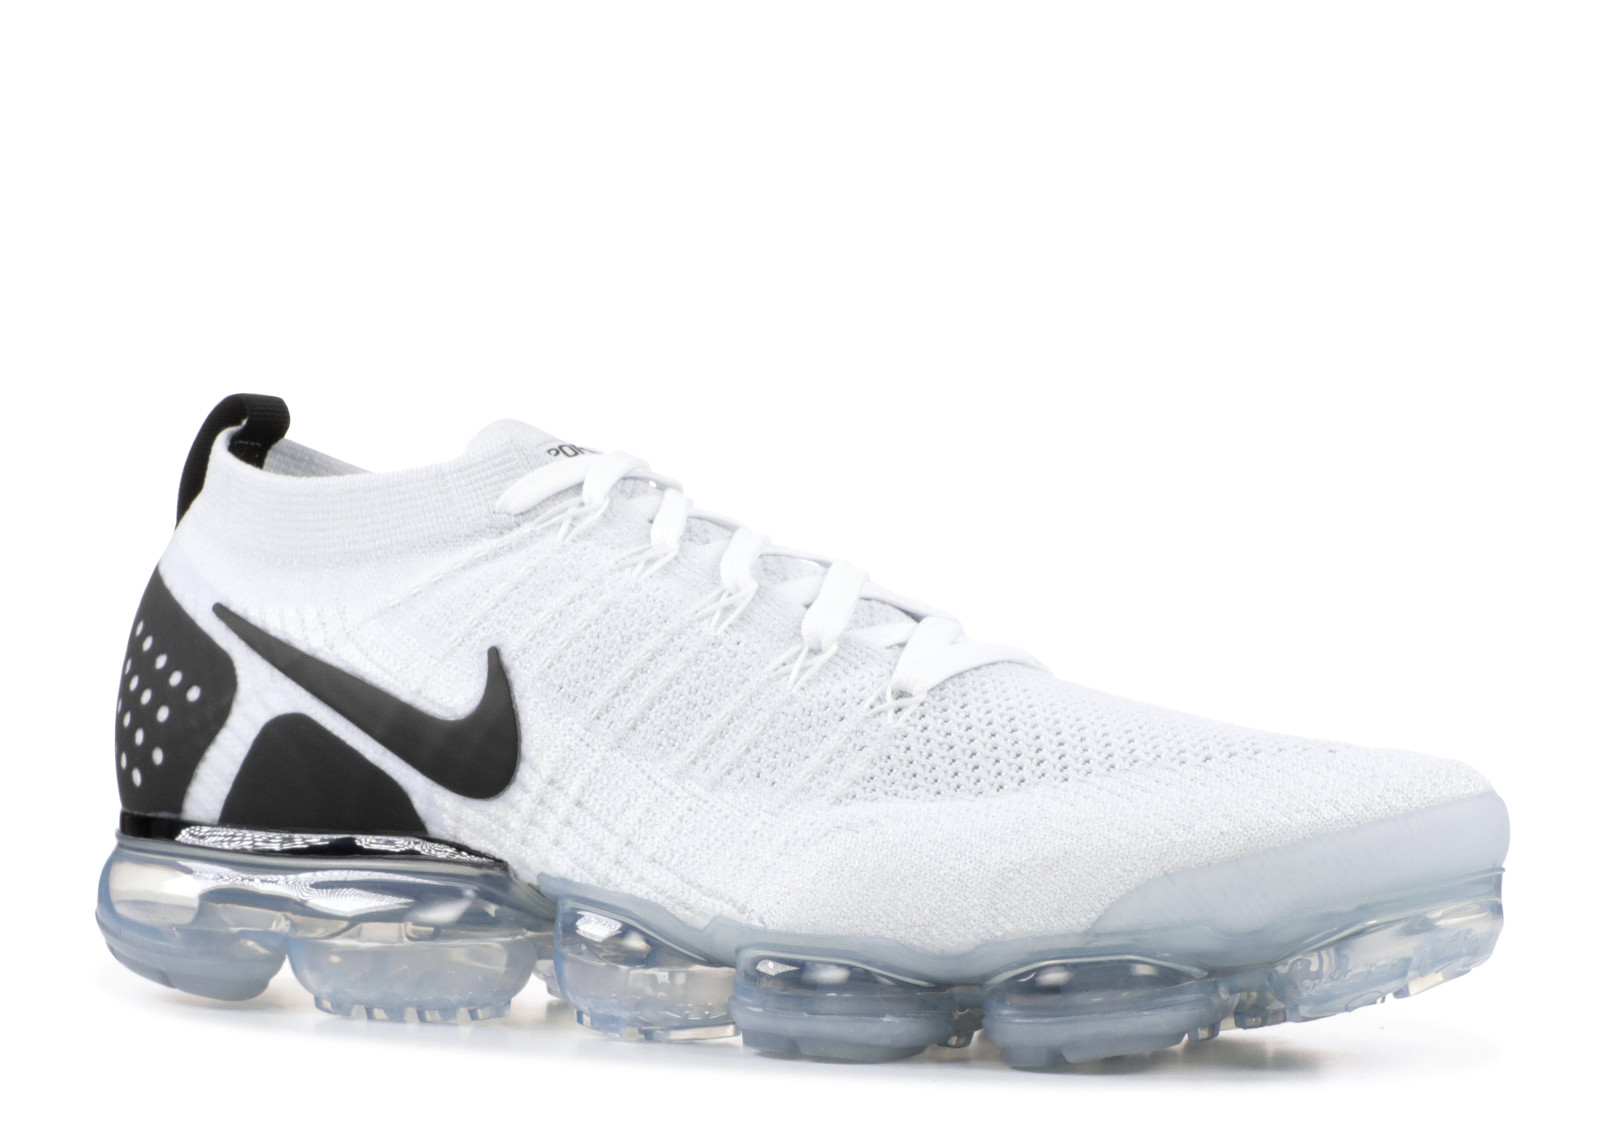 062e4115c822d Nike Air VaporMax 2 White Black